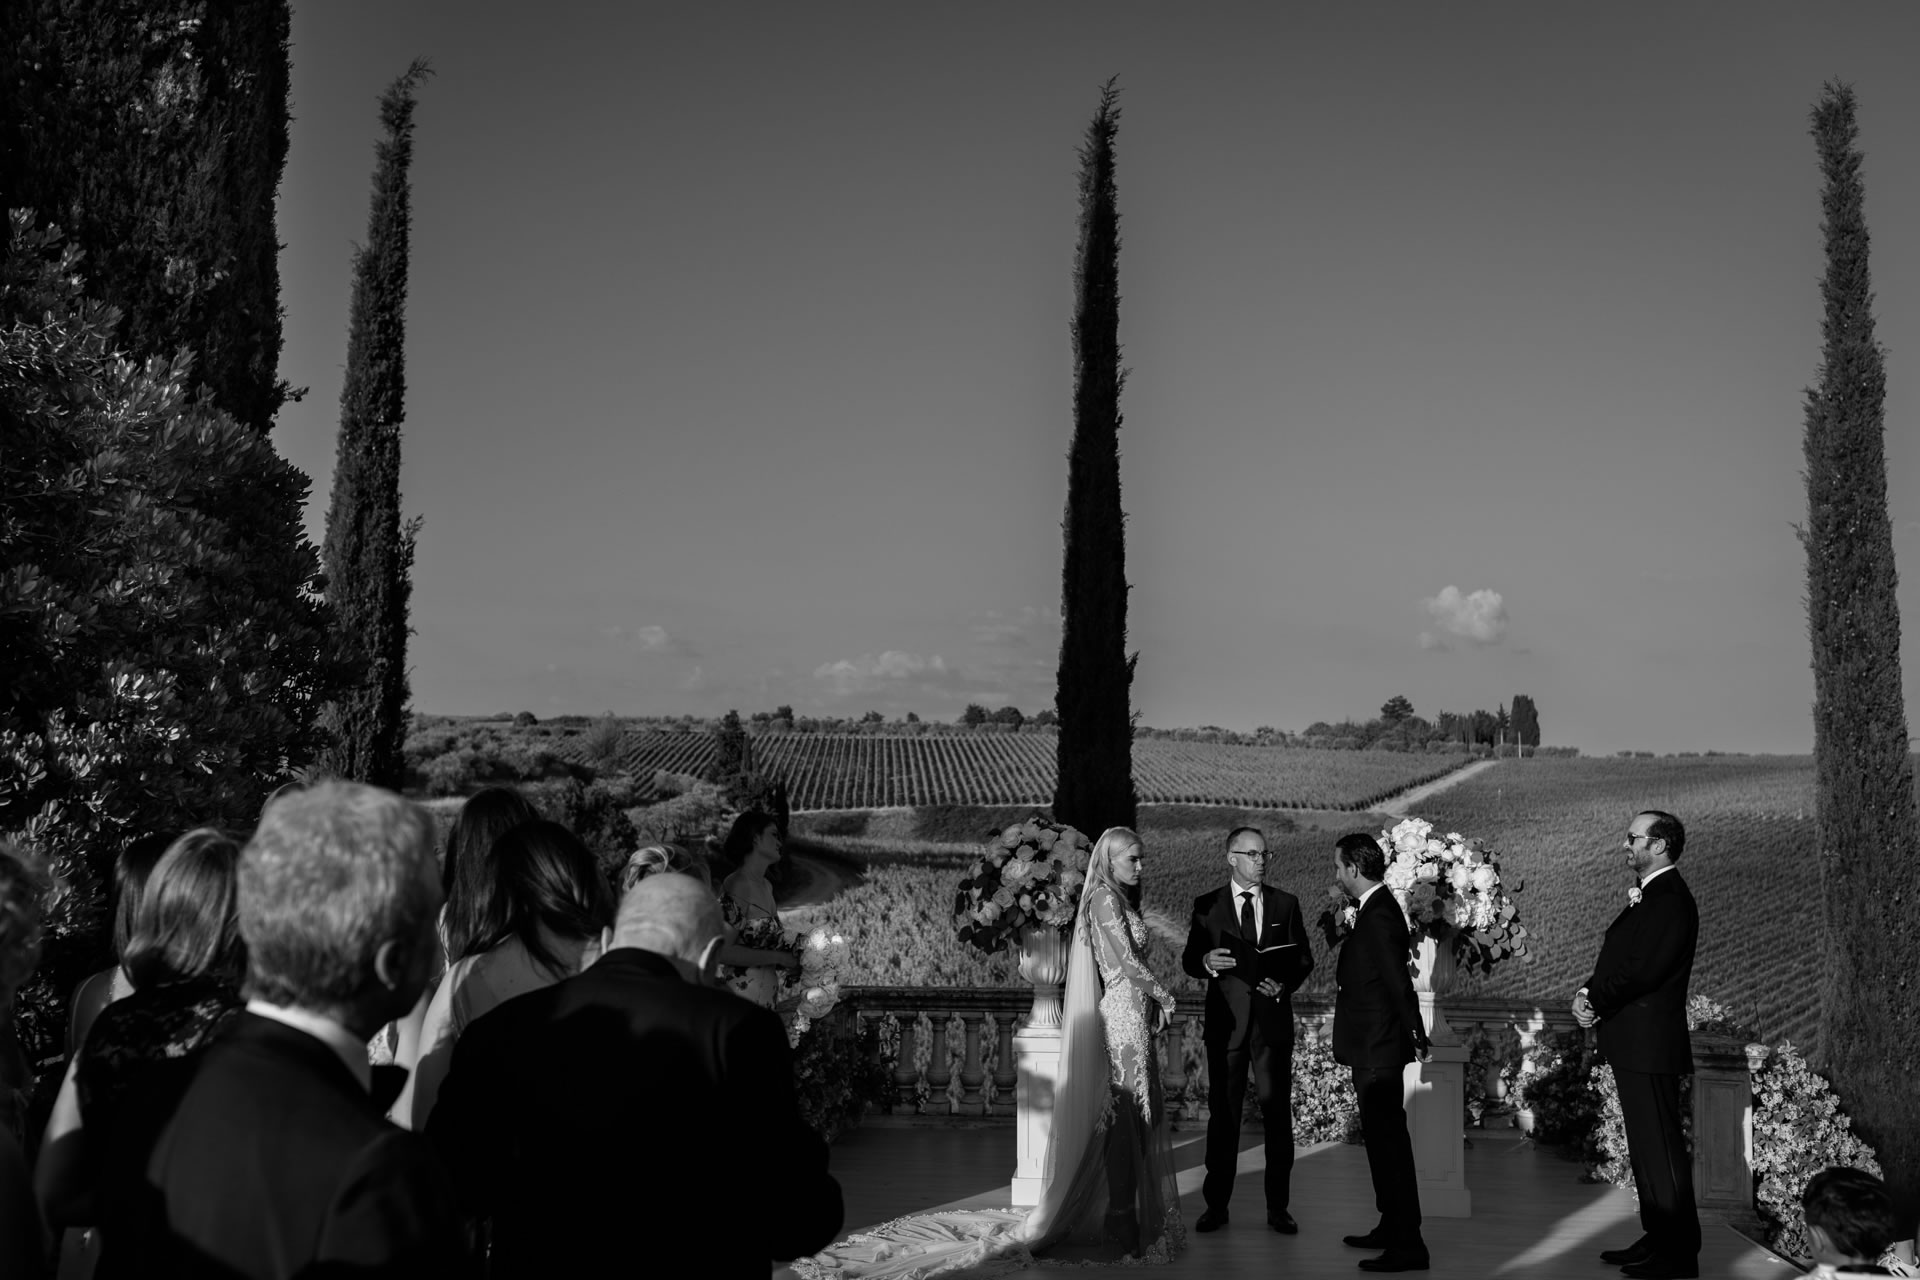 Tolaini - 39 :: Exciting wedding in the countryside of Siena :: Luxury wedding photography - 38 :: Tolaini - 39